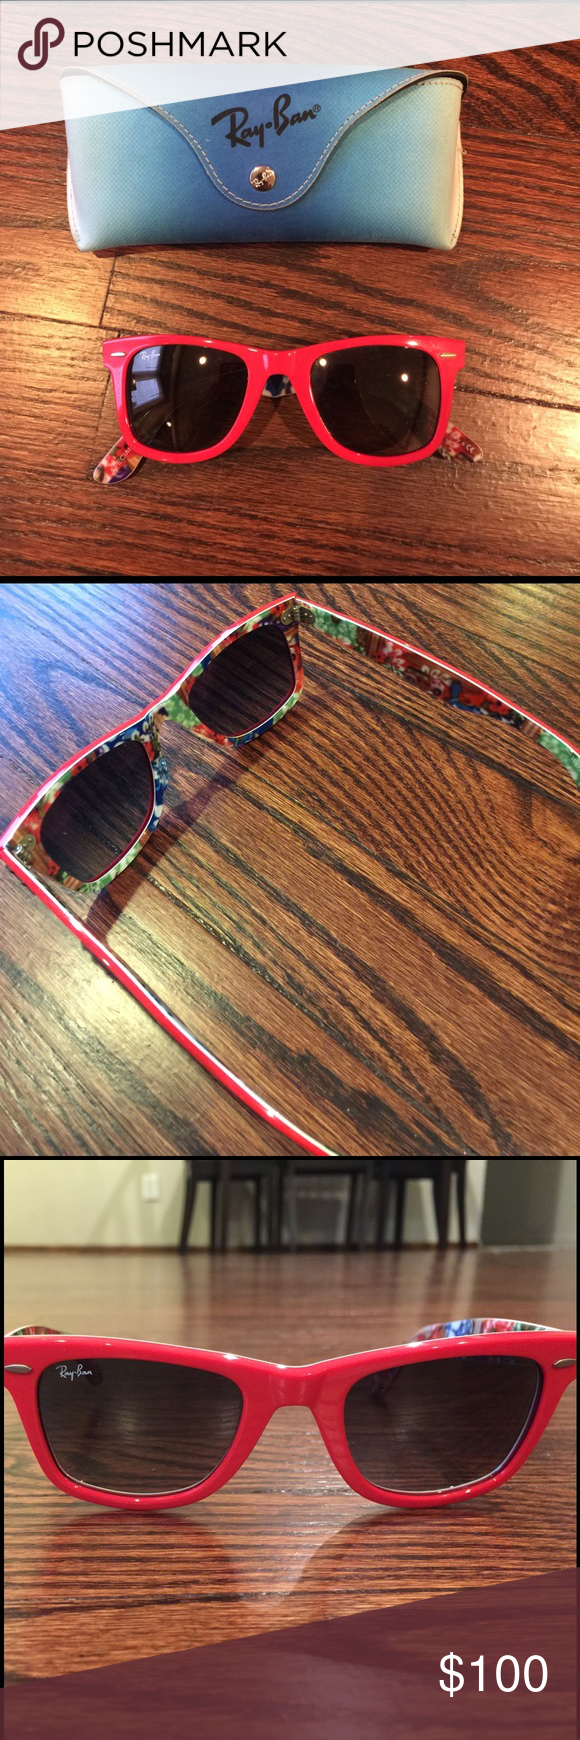 27a336133c ... authentic ray ban wayfarer sunglasses rb2140 ray ban sunglasses worn  only a handful of times aa62a ...